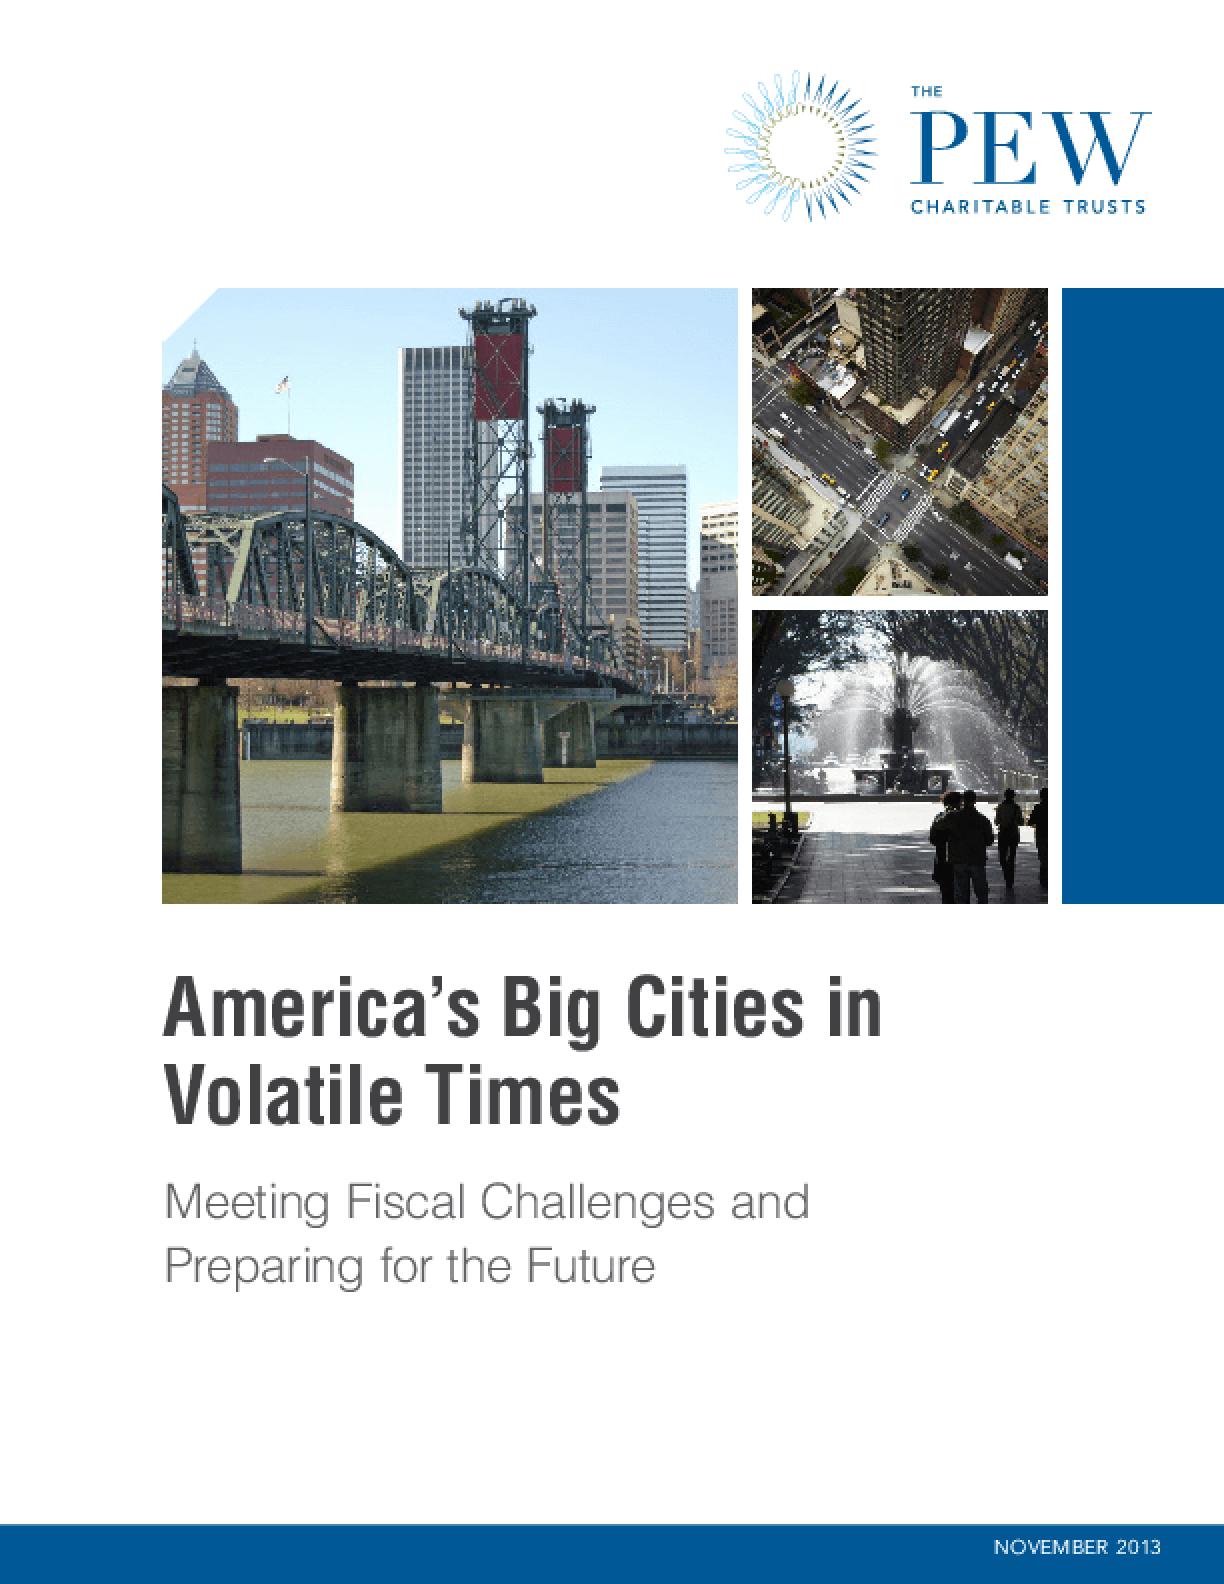 America's Big Cities in Volatile Times: Meeting Fiscal Challenges and Preparing for the Future